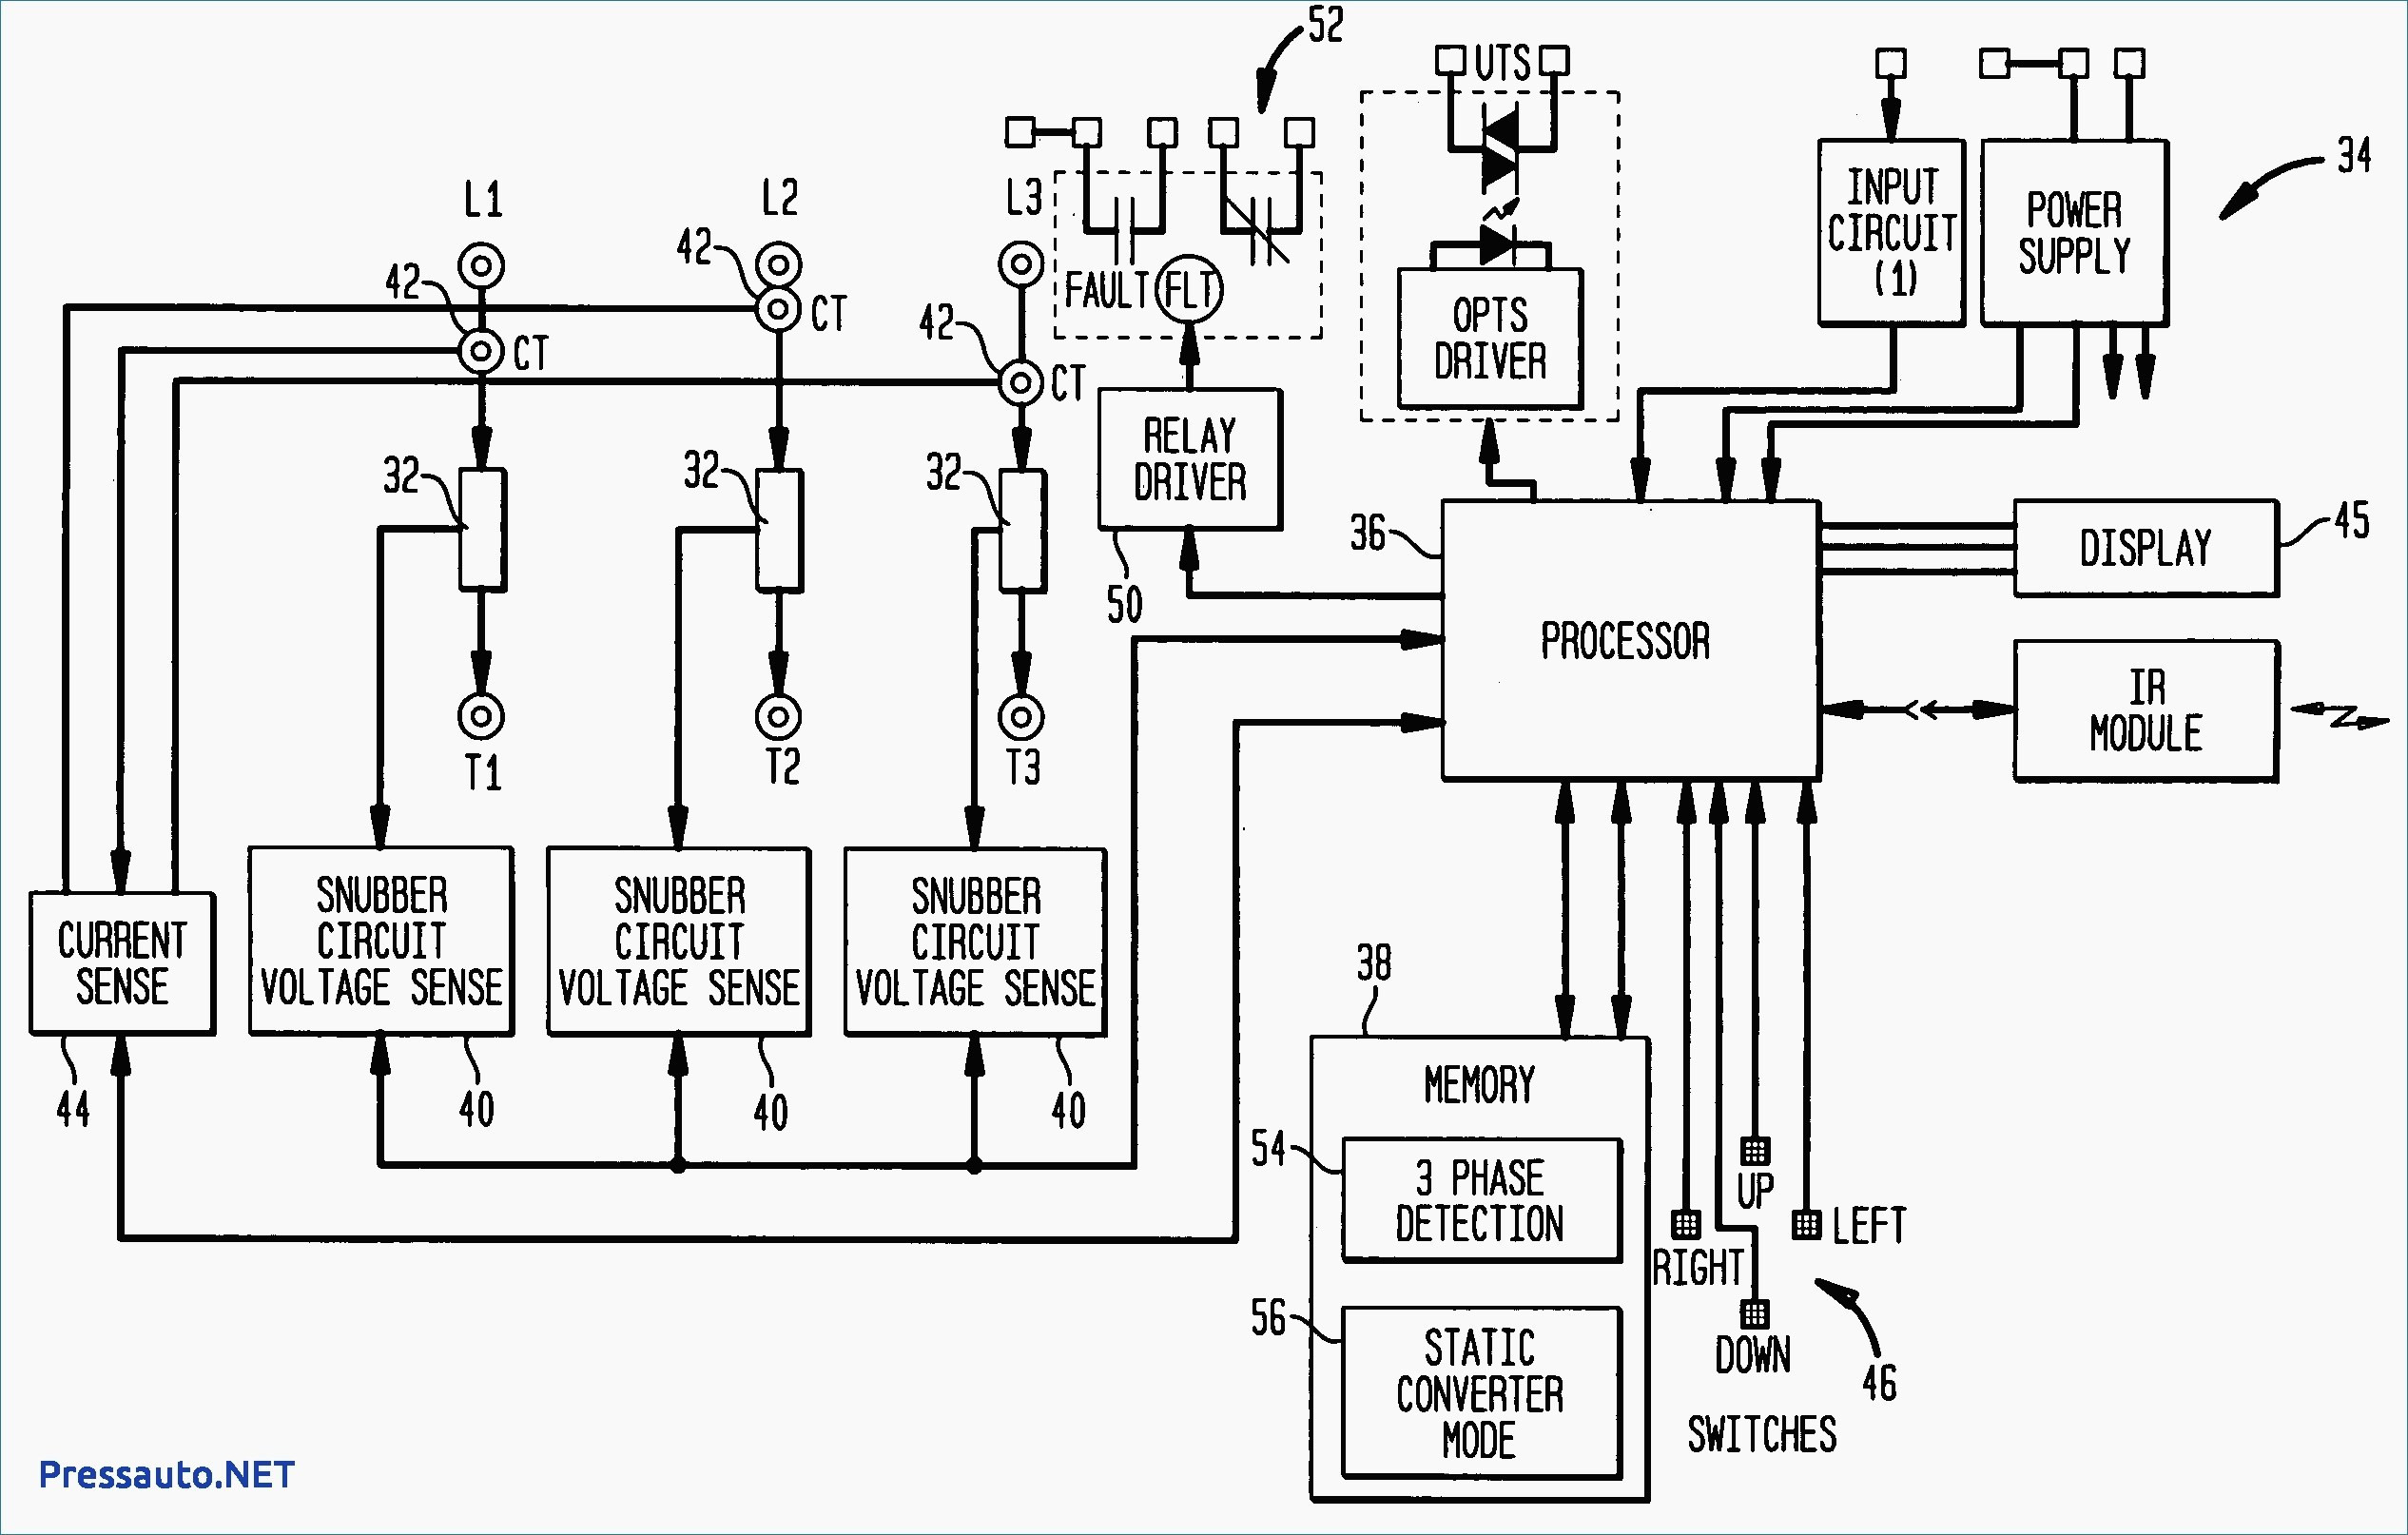 Start Stop Switch Wiring Diagram Natebird Me Beauteous - Chromatex - Start Stop Switch Wiring Diagram